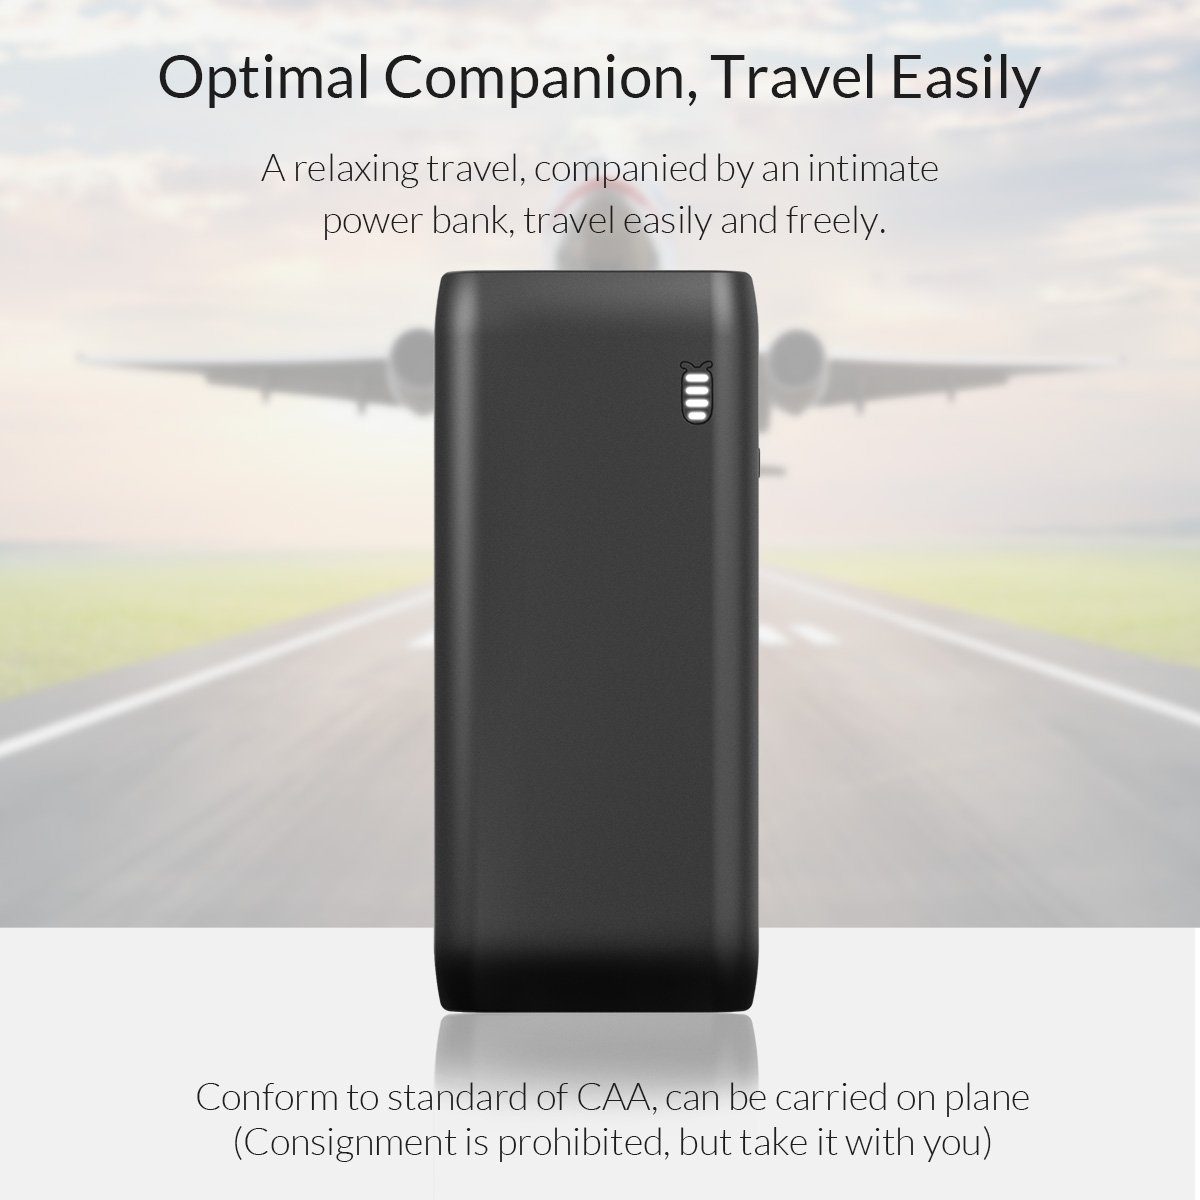 optimal companion travel easily